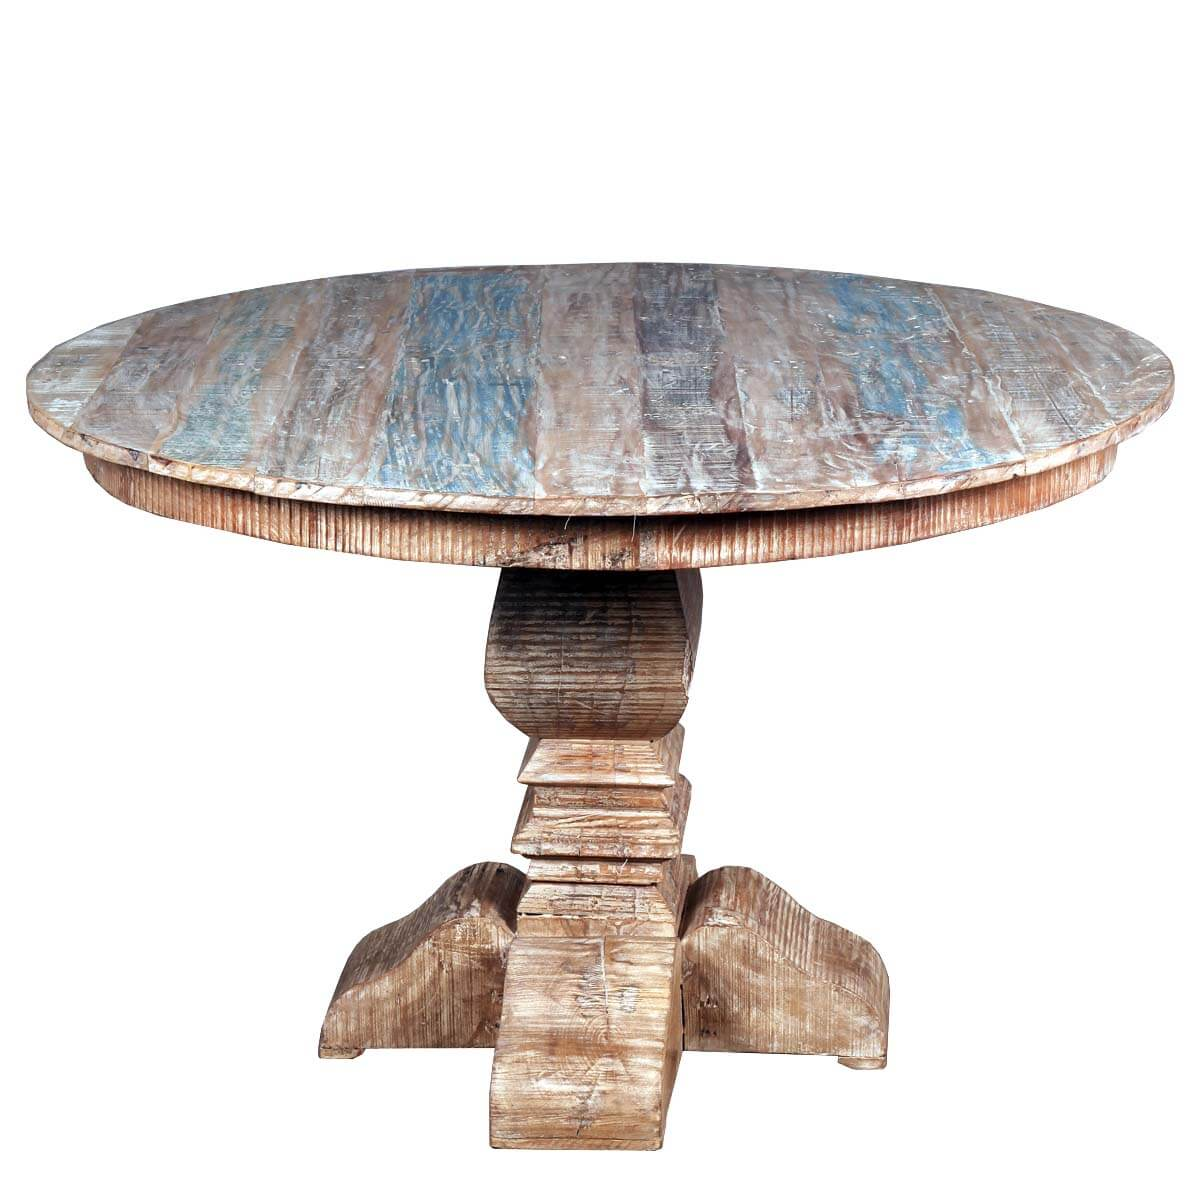 French quarter rustic reclaimed wood round dining table Rustic wood dining table